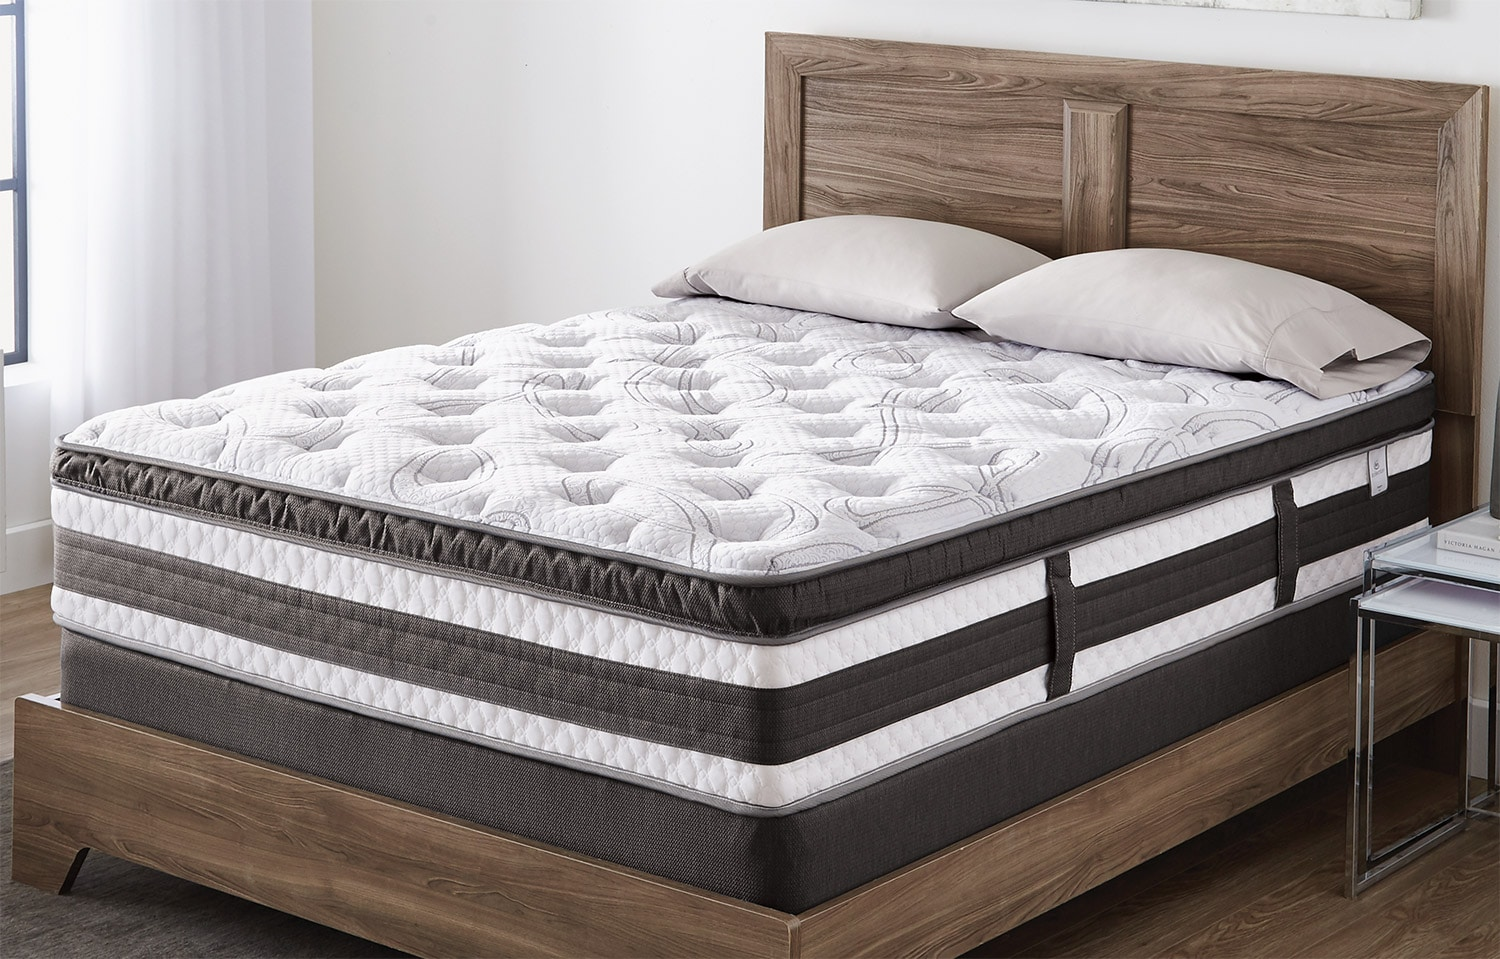 Mattresses and Bedding - Serta iCollection™ Kingsport Euro-Top Luxury Firm King Mattress Set